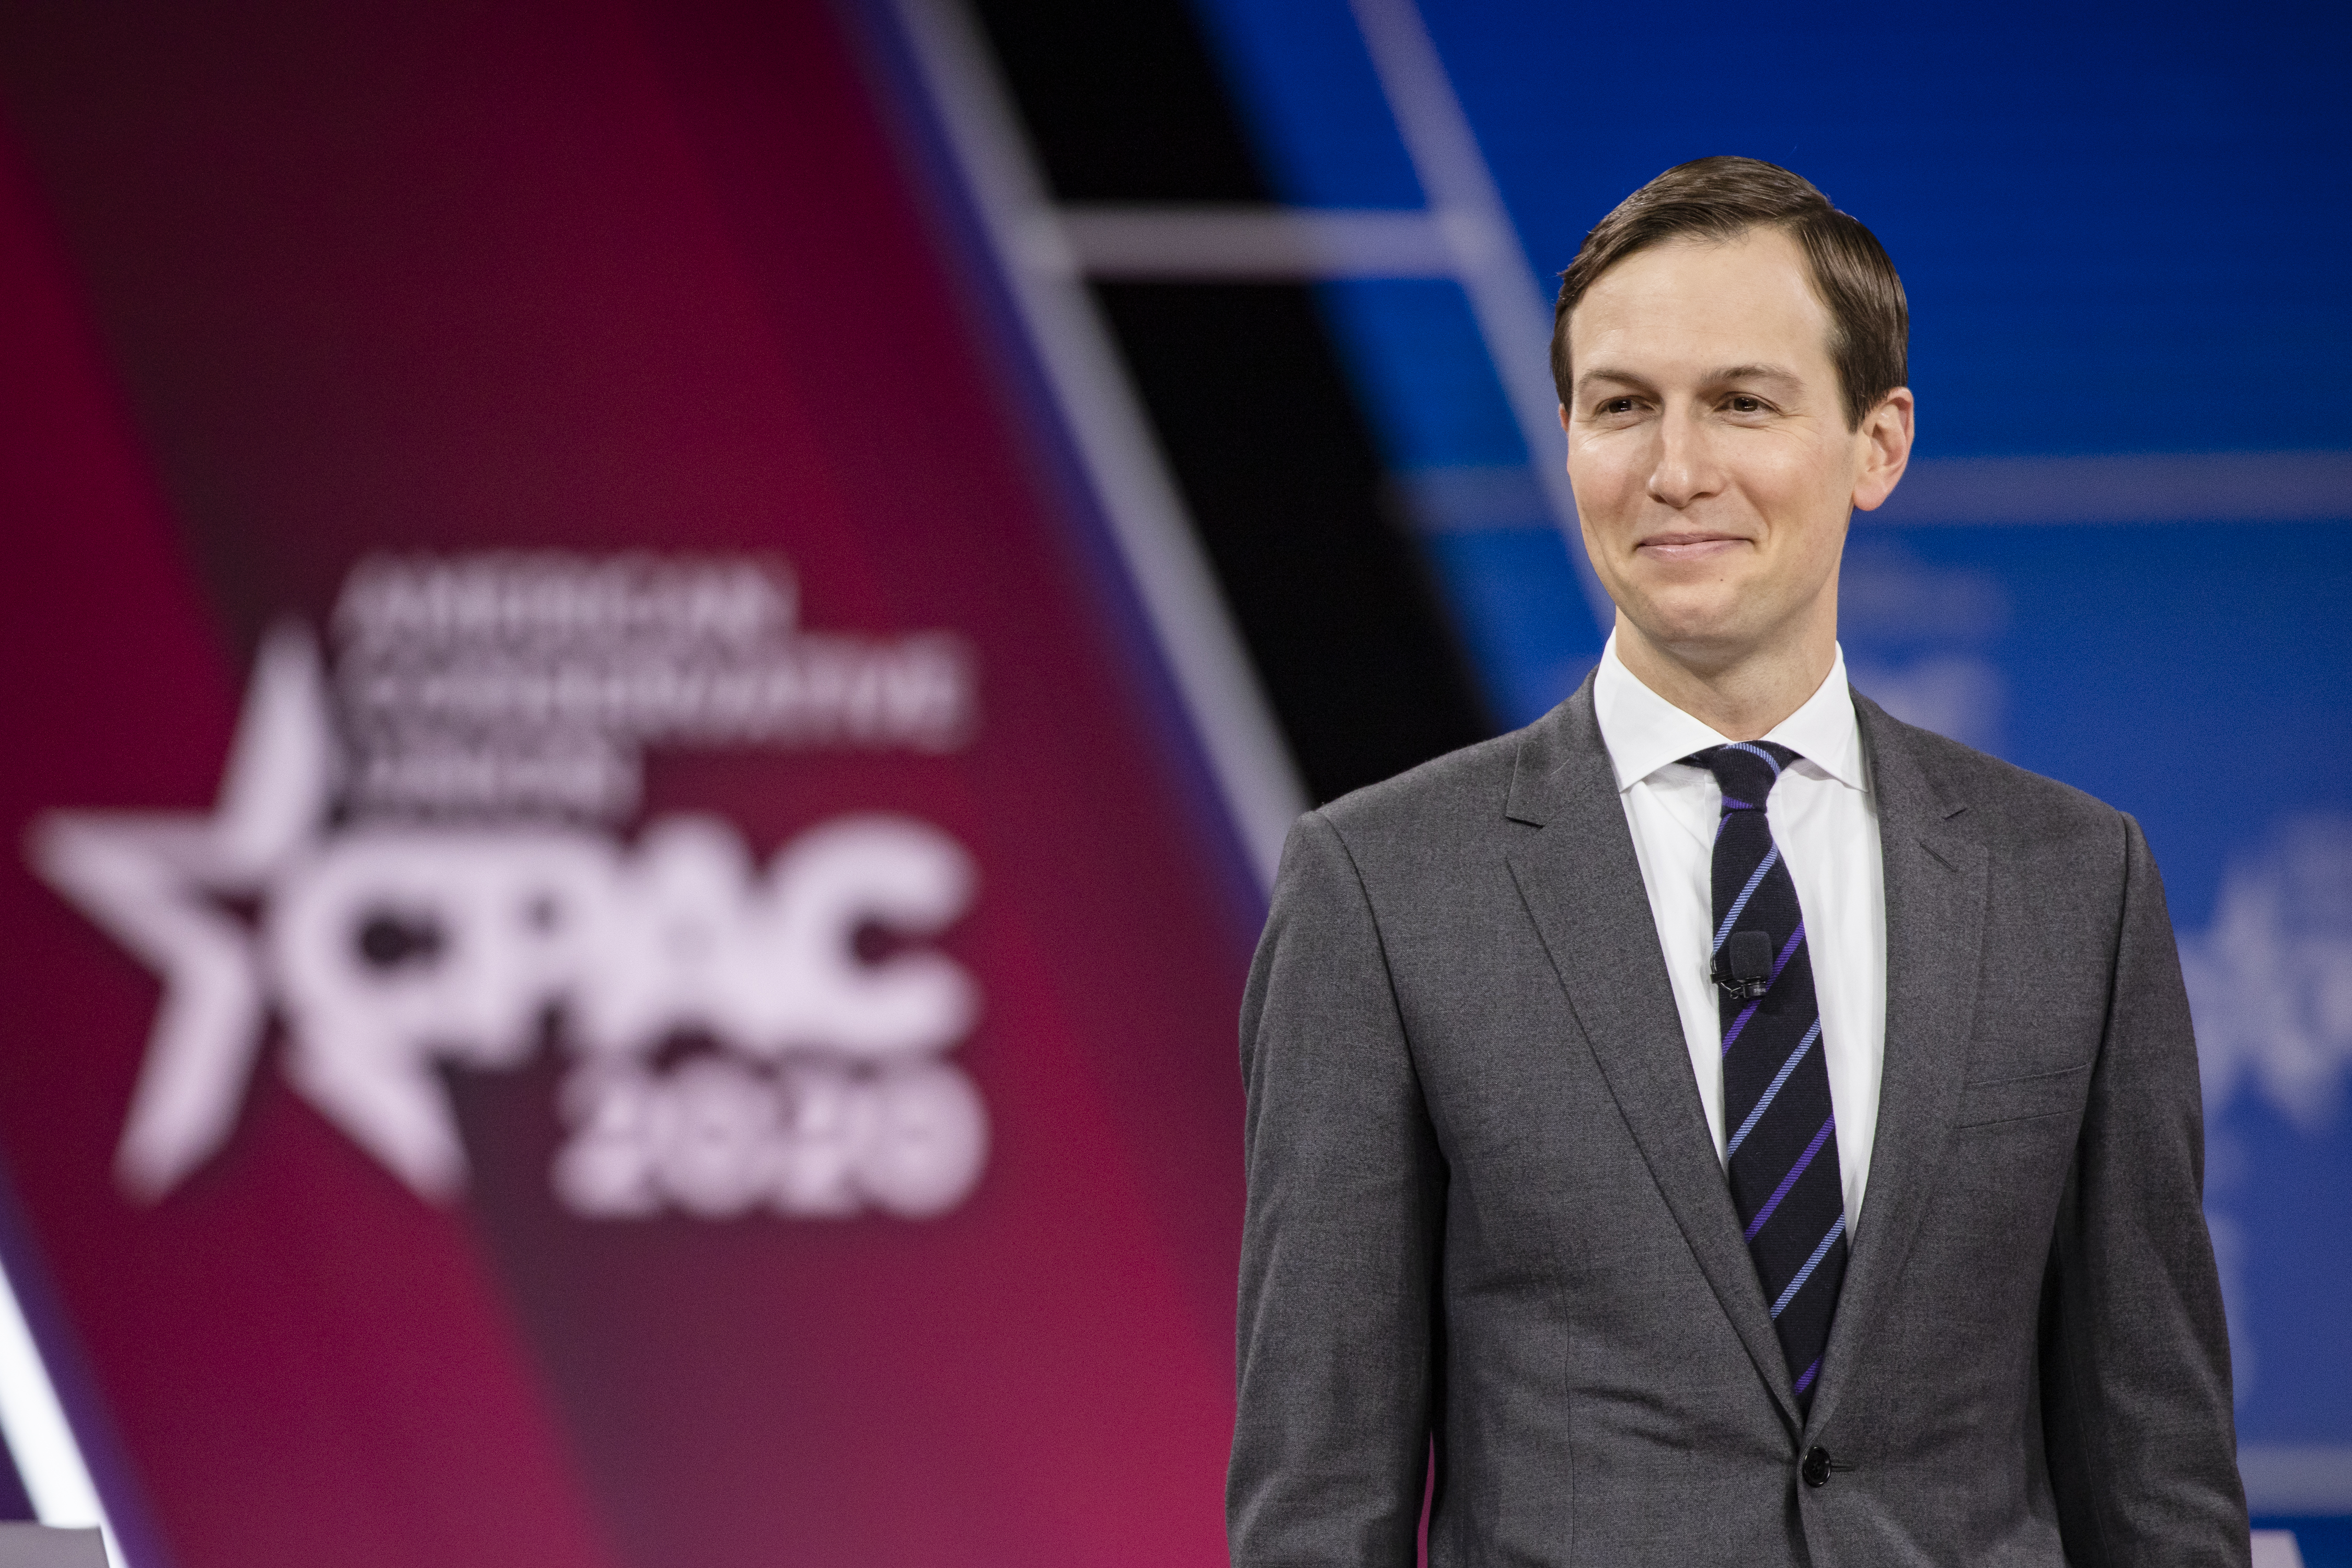 NATIONAL HARBOR, MD - FEBRUARY 28: Jared Kushner, senior advisor to U.S. President Donald Trump, speaks at the Conservative Political Action Conference 2020 (CPAC) hosted by the American Conservative Union on February 28, 2020 in National Harbor, MD. (Photo by Samuel Corum/Getty Images)